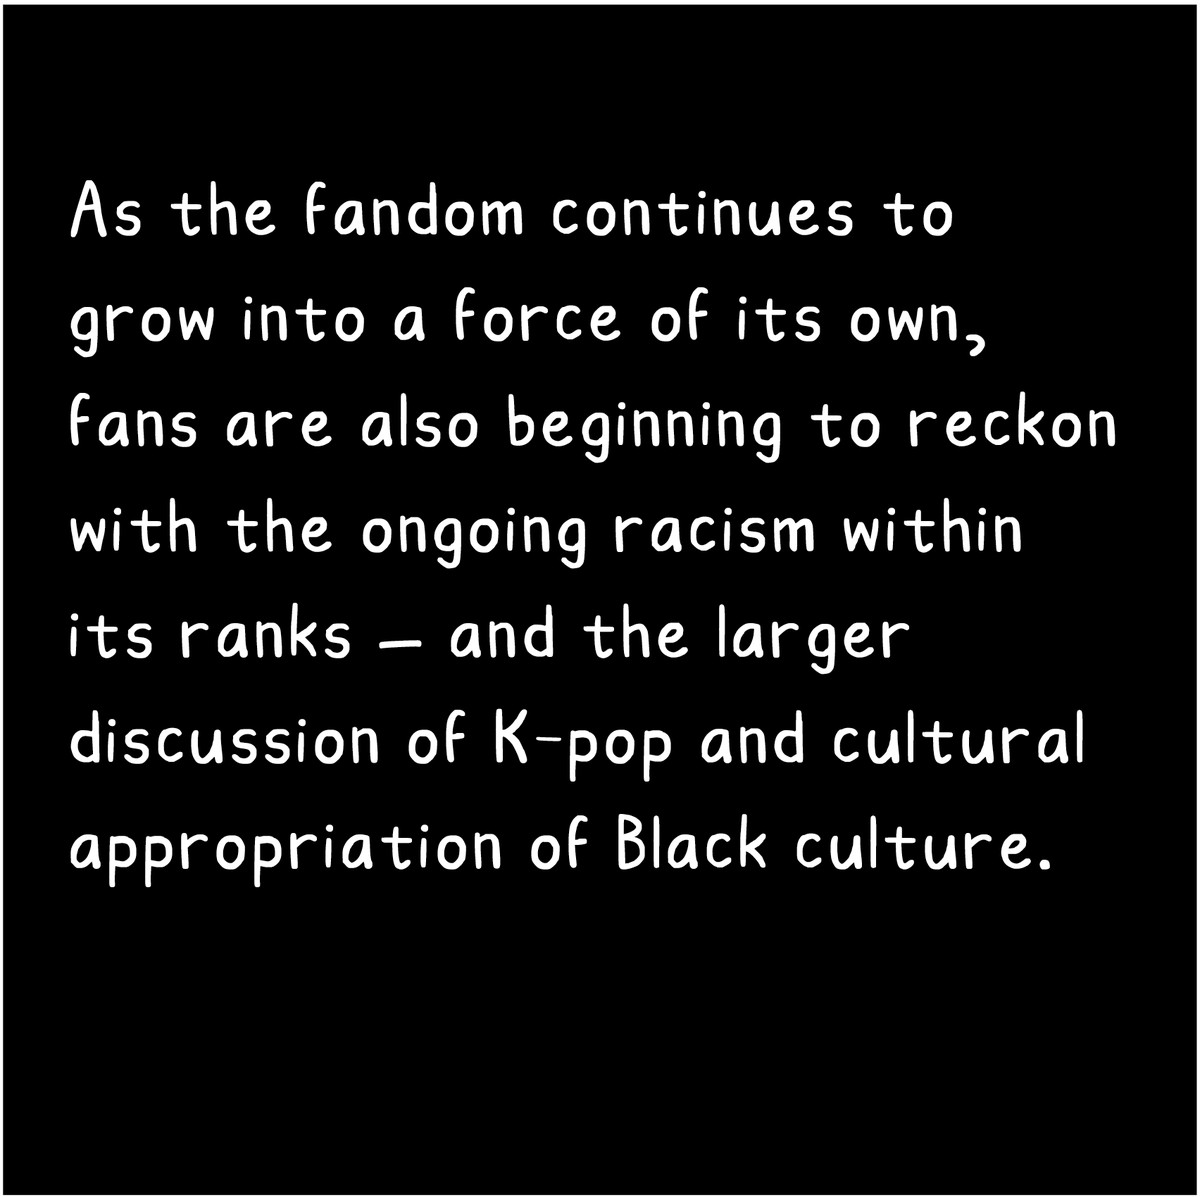 As the fandom continues to grow into a force of its own, fans are also beginning to reckon with ongoing racism within its ranks — and the issue of cultural appropriation of Black culture.